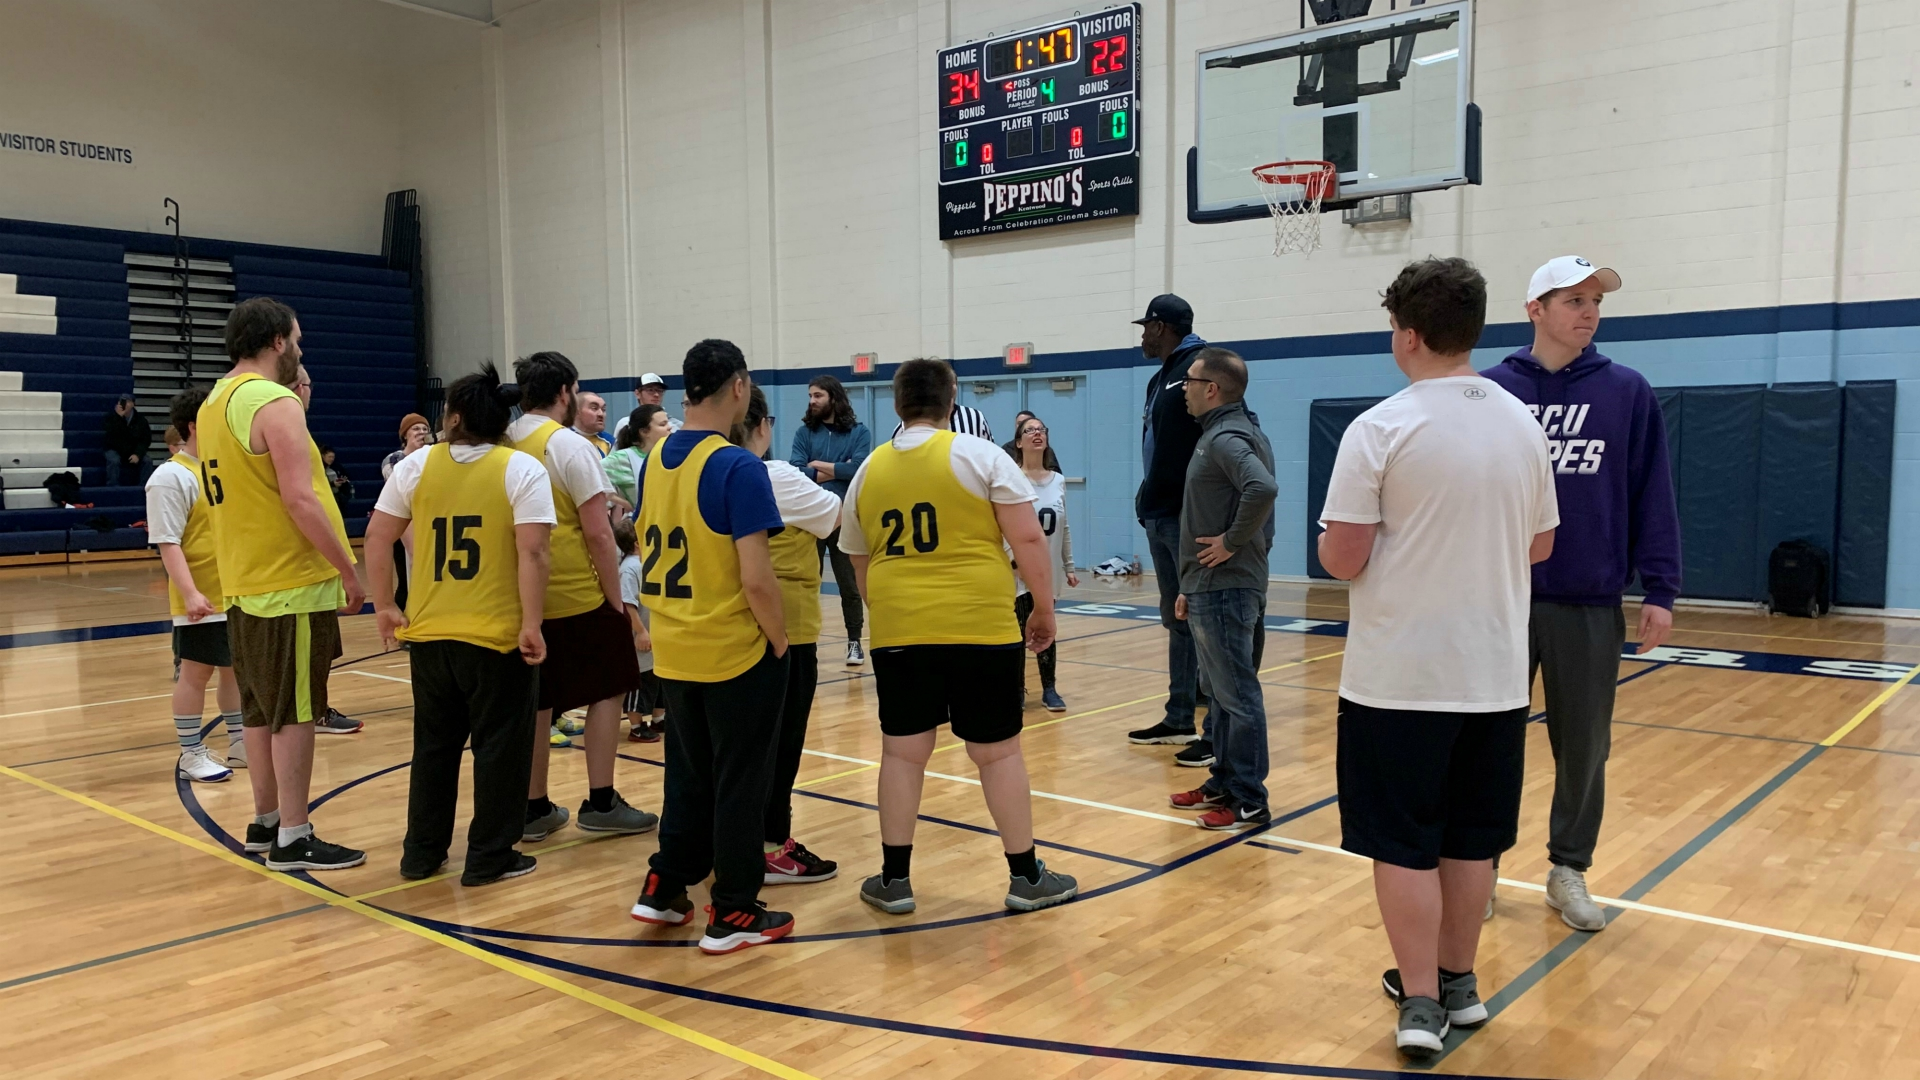 Former Detroit Pistons player Ben Wallace visits at the Special Olympics Michigan's Unified Sports & Inclusion Center on Feb. 29, 2020.